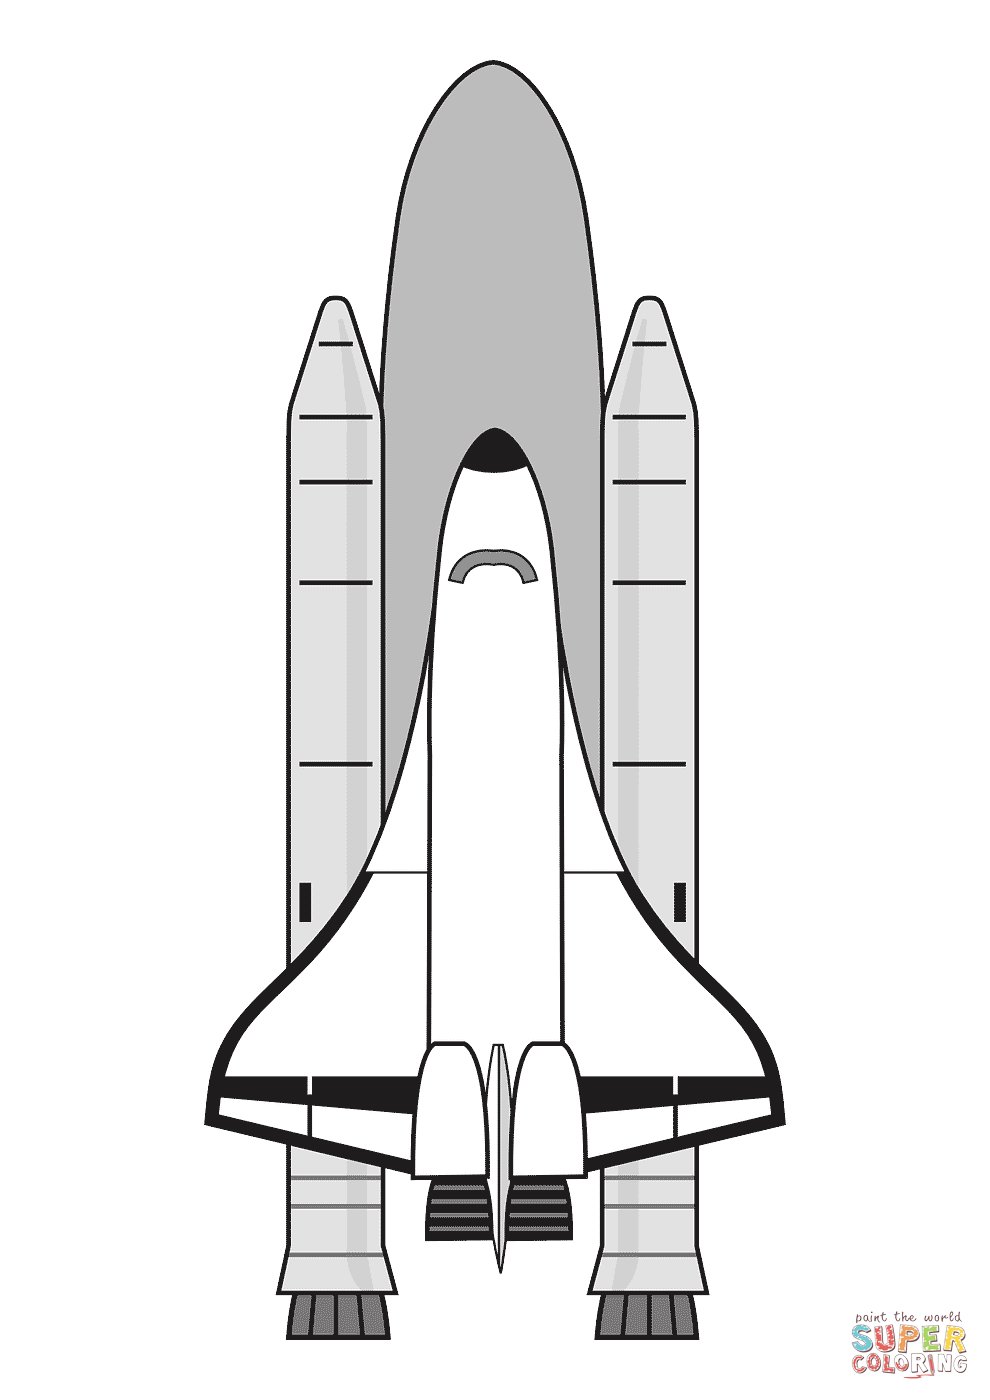 space shuttle coloring pages space shuttle coloring pages clipart panda free shuttle space coloring pages